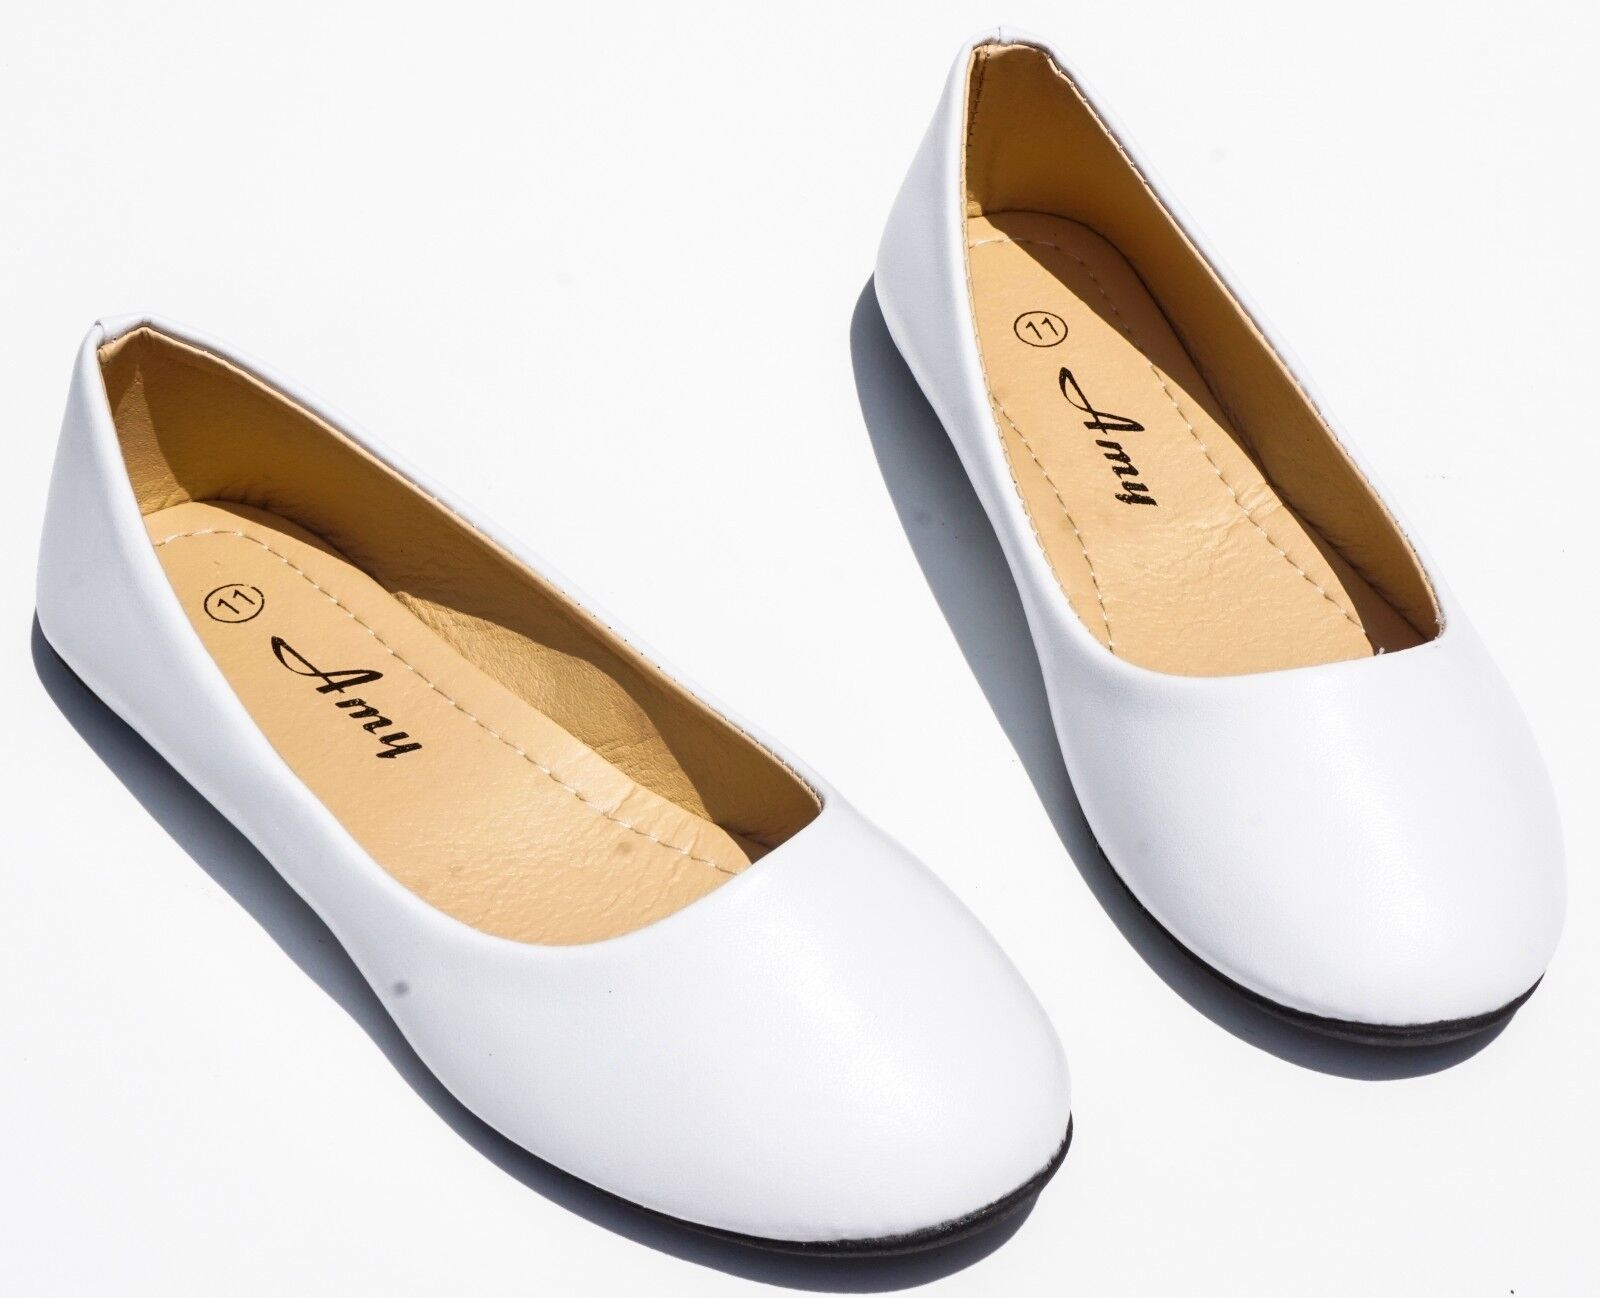 Home Girls Casual Shoes Flats Girls' Flats Shoes. Payless has the flats for girls that you're looking for with the best prices on kids' shoes everyday. Sort By: Girls' Infant Coco Ballet Flat Teeny Toes. $ reg $ (1 reviews). Sale! Girls' Infant Gracie String-Tie Casual.